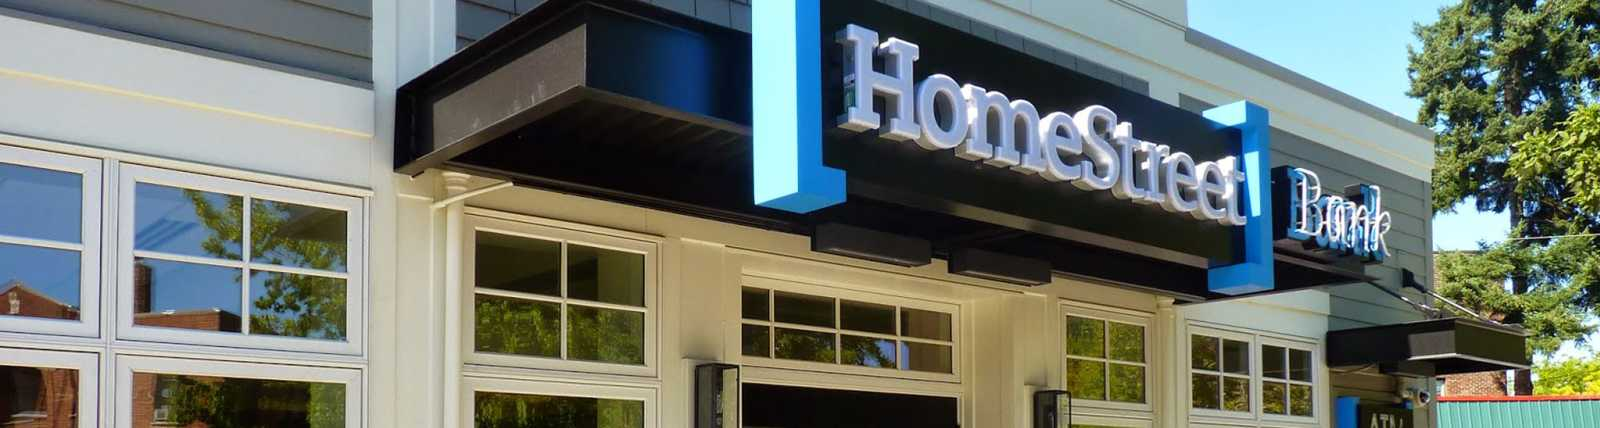 HOMESTREET BANK, COMMERCIAL BANKING